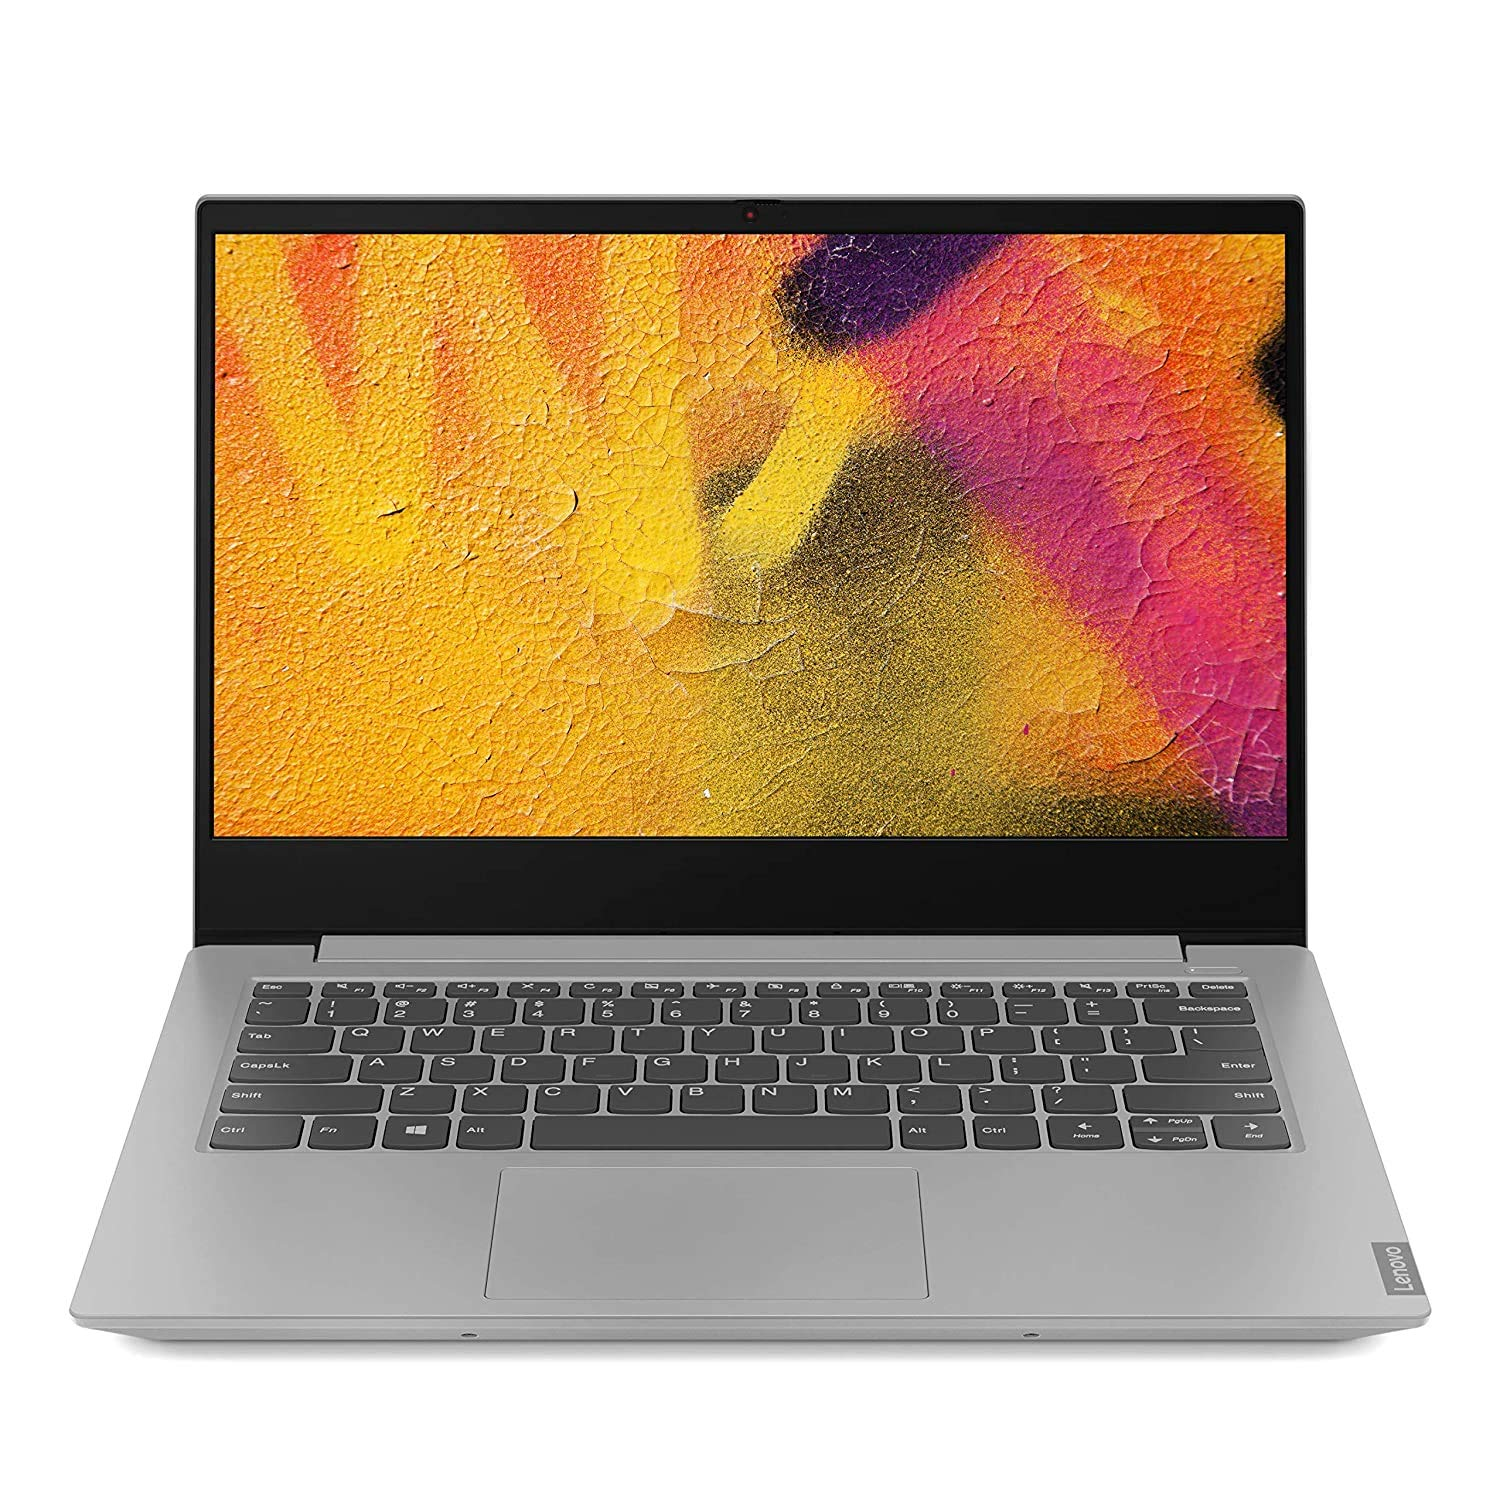 Lenovo Ideapad S340 Intel Core i5 10th Generation 14 inch FHD Thin and Light Laptop